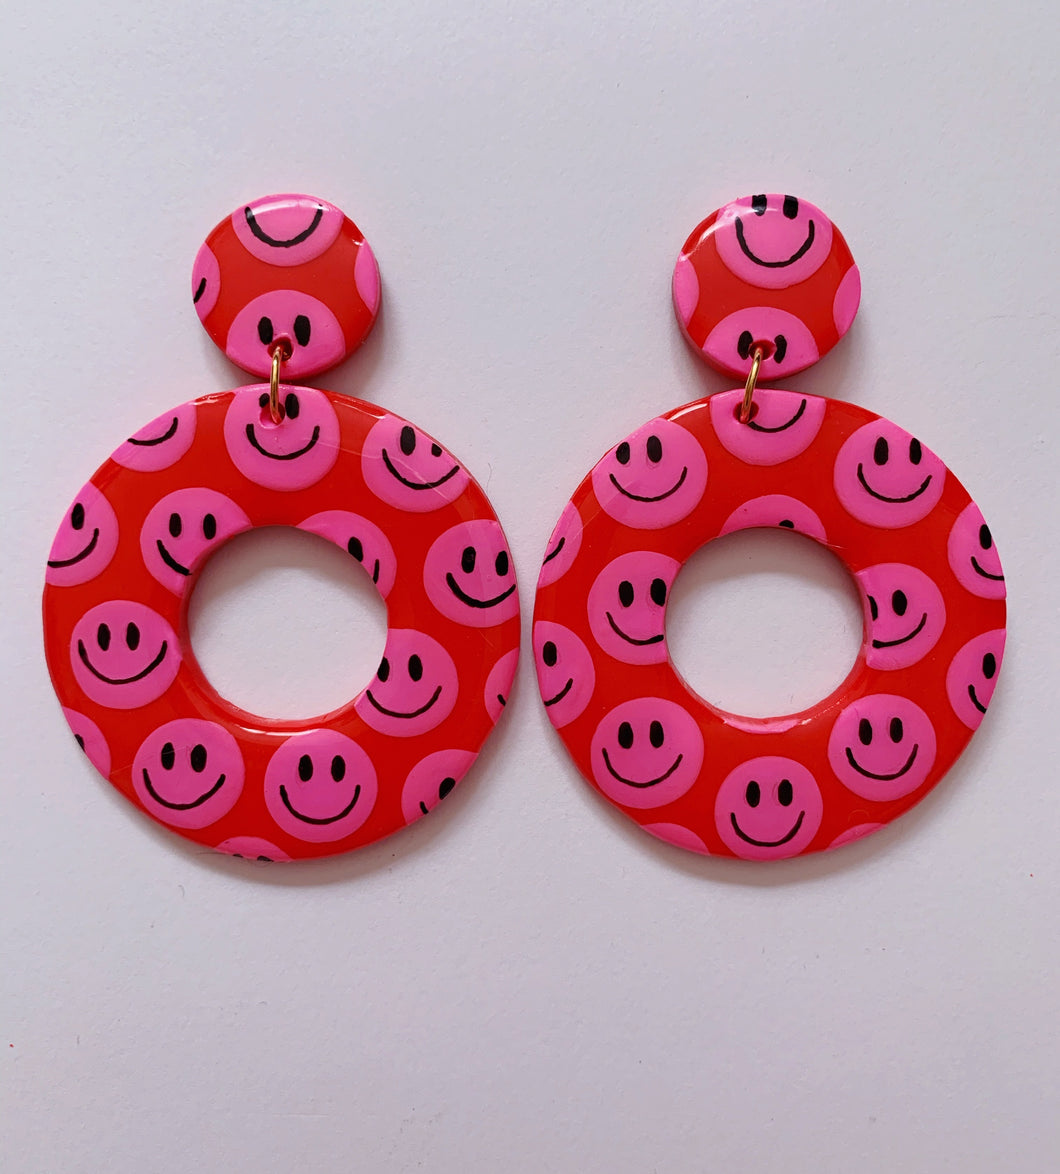 XL Red Hoops with Pink Smilies